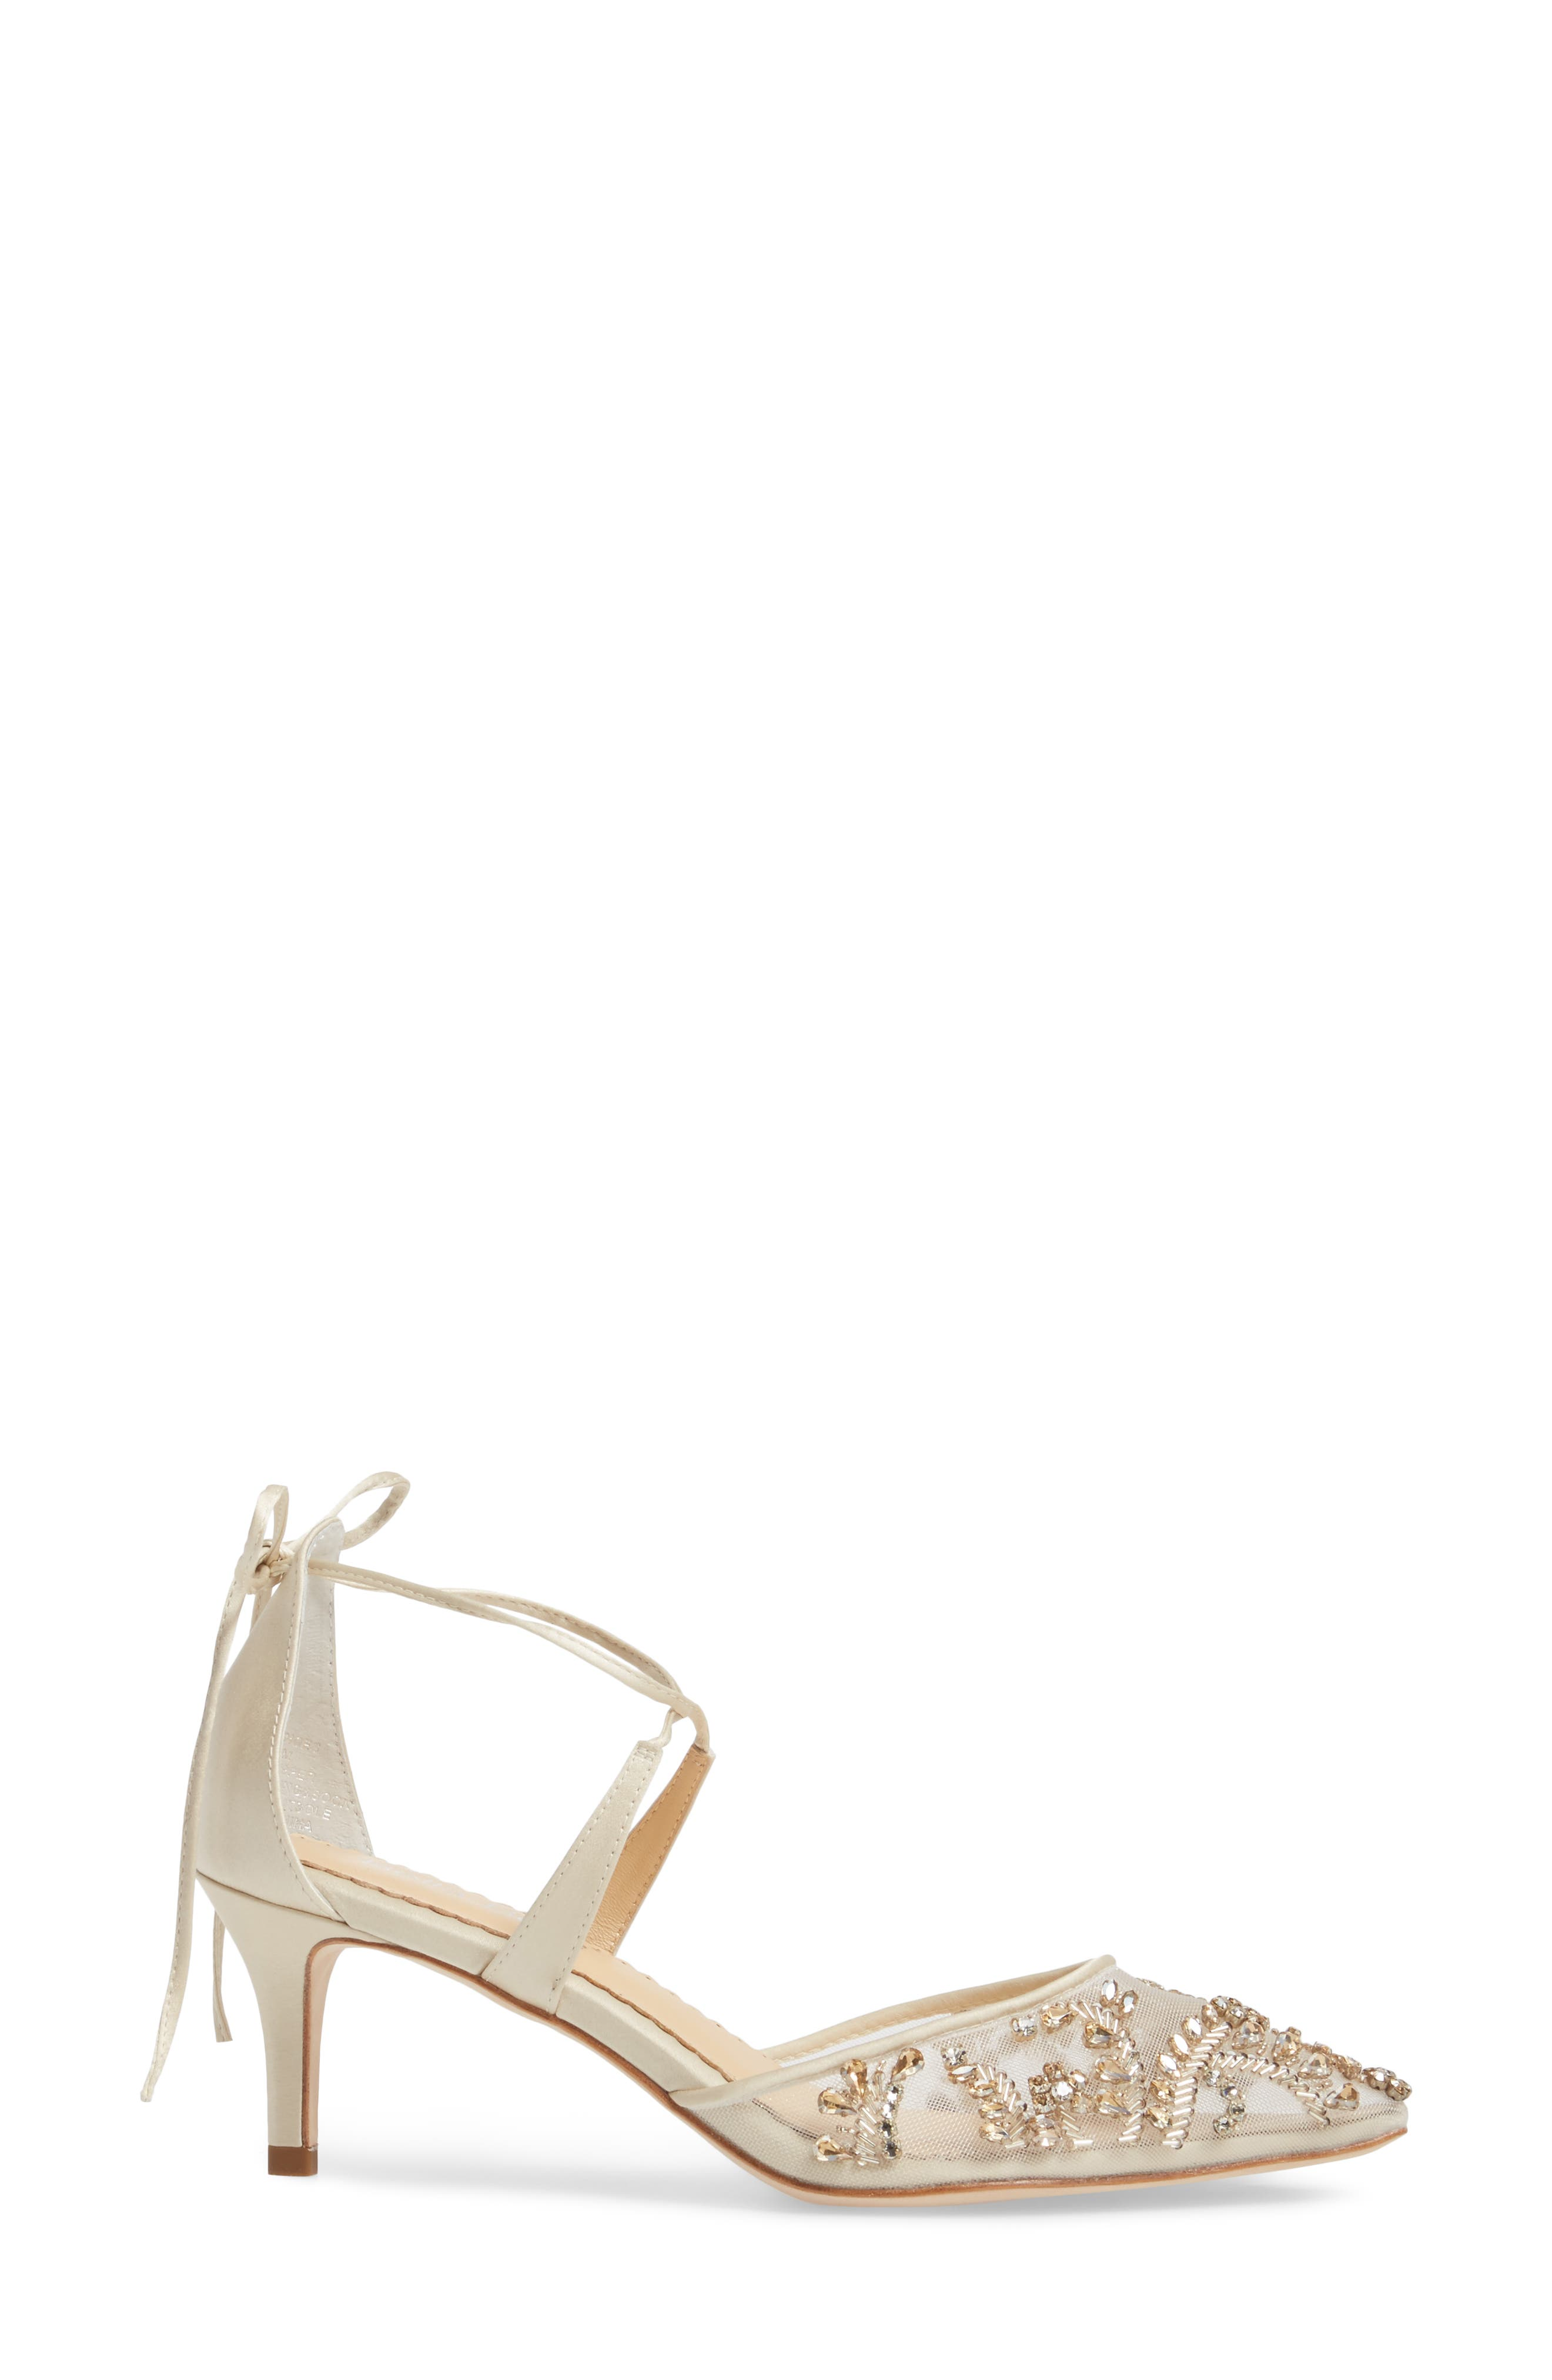 Frances Embellished Kitten Heel Pump,                             Alternate thumbnail 3, color,                             CHAMPAGNE SILK